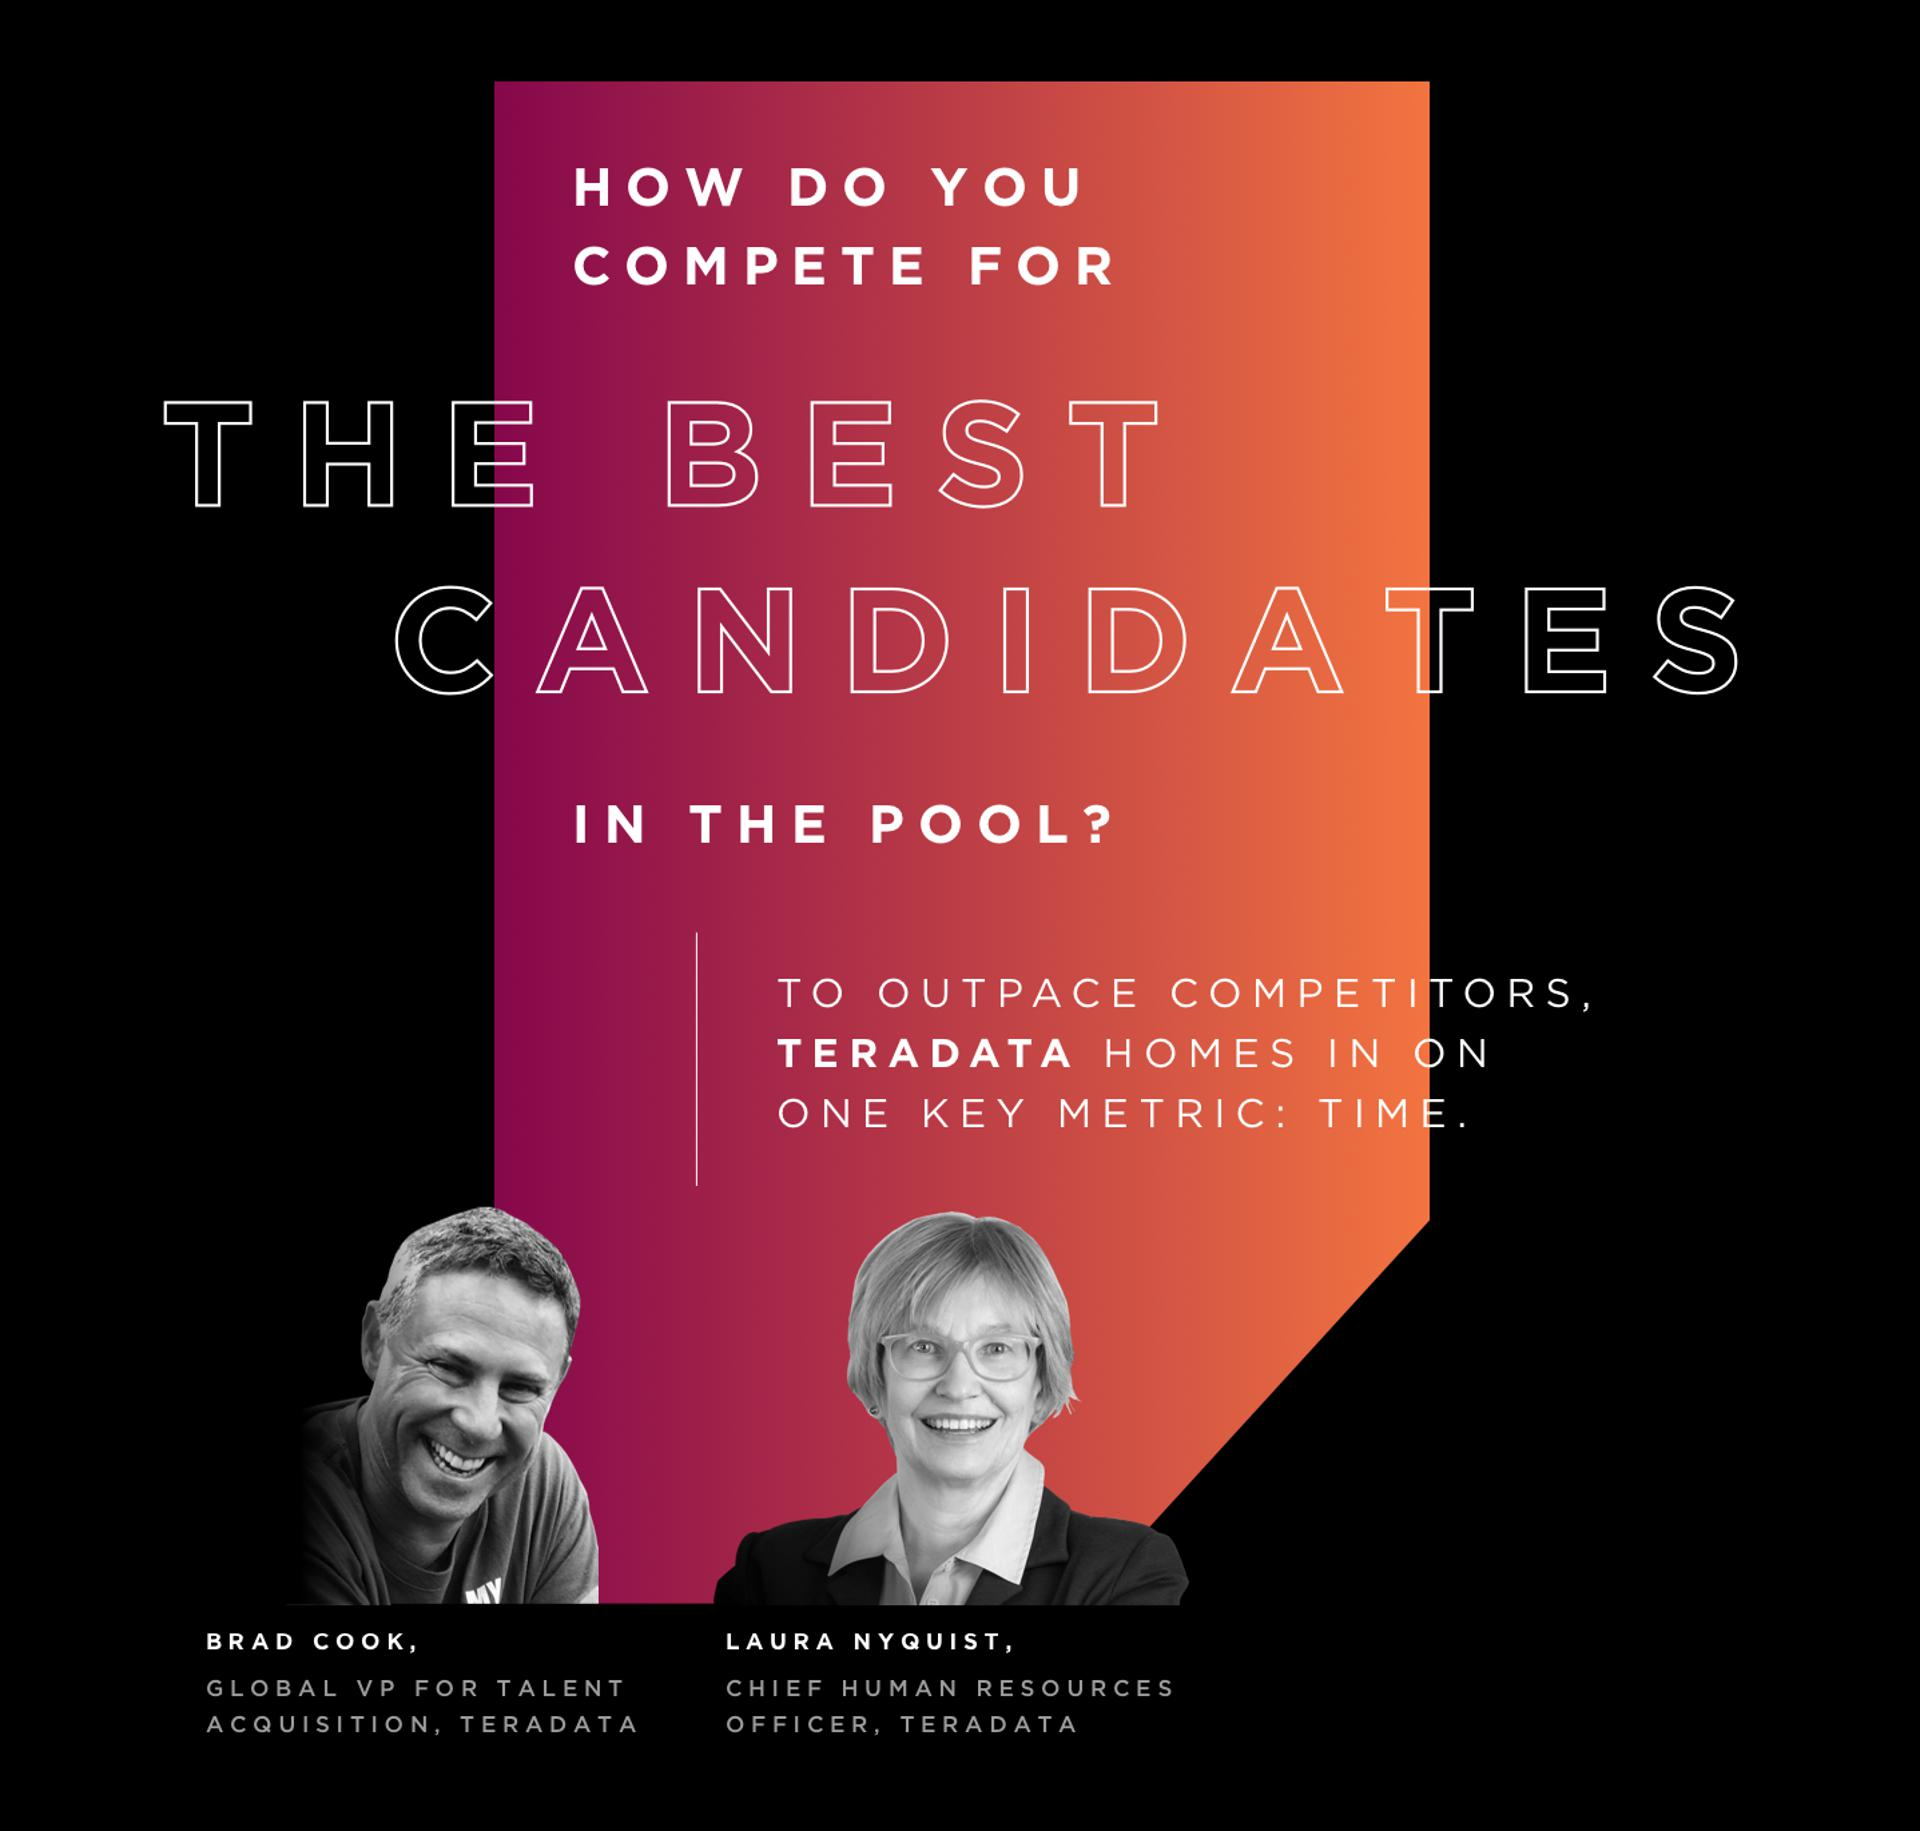 3. How Do You Compete For The Best Candidates In The Pool? To outpace competitors, Teradata homes in on one key metric: time.